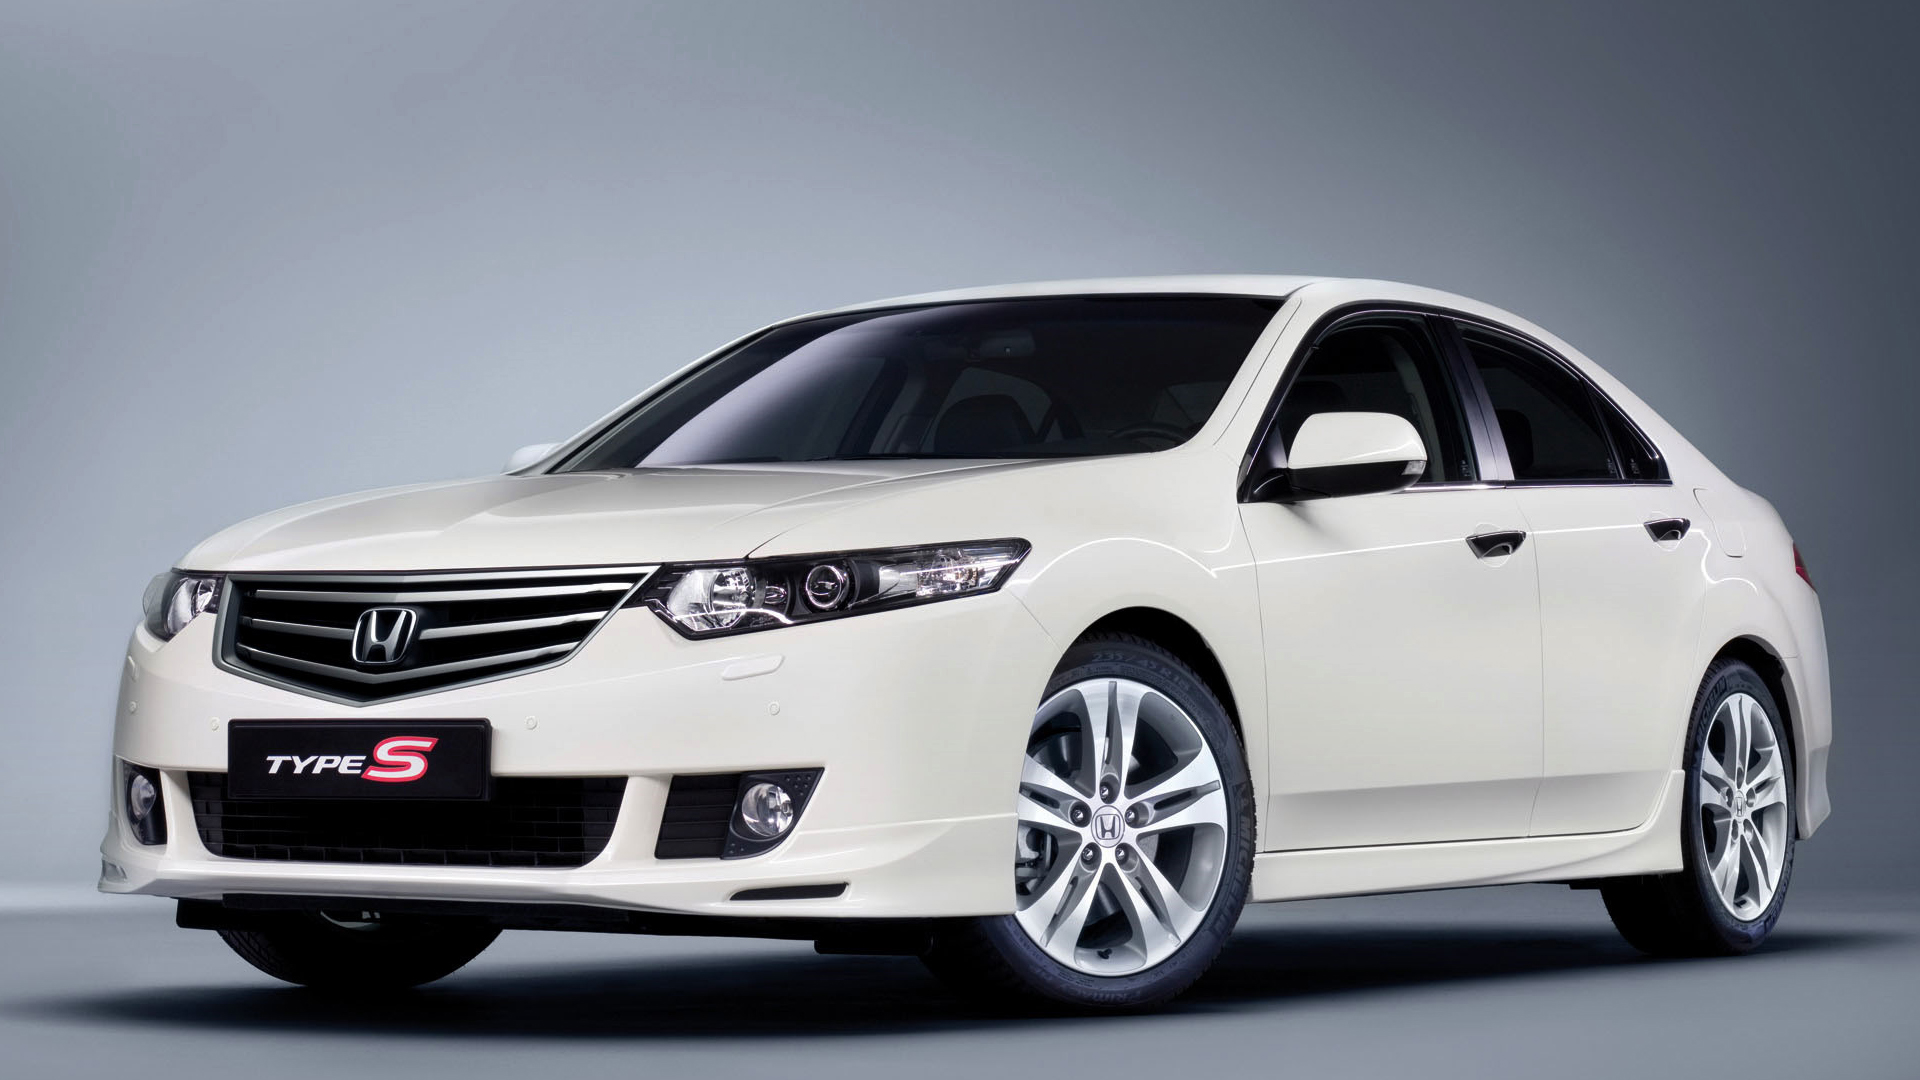 Car Wallpapers Honda Accord Type S Car Humor